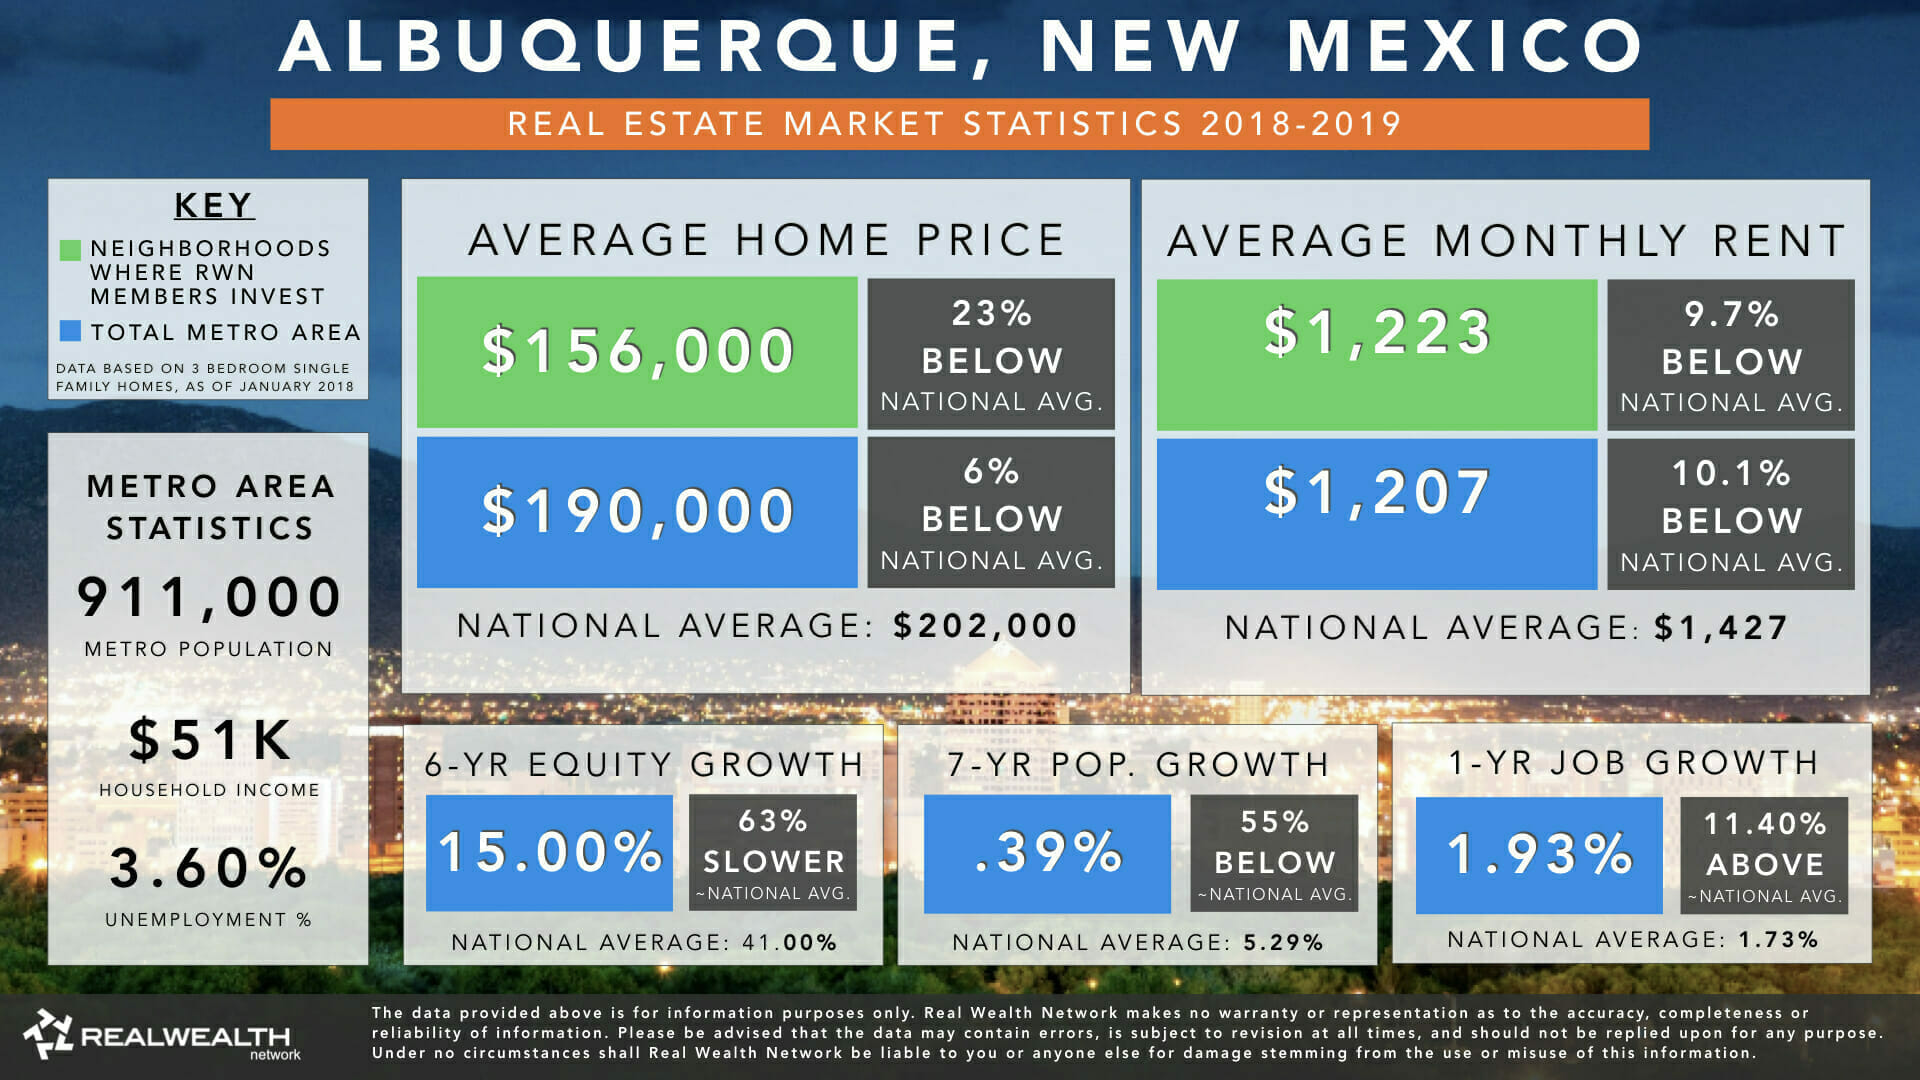 Albuquerque Real Estate Market Trends & Statistics for 2019